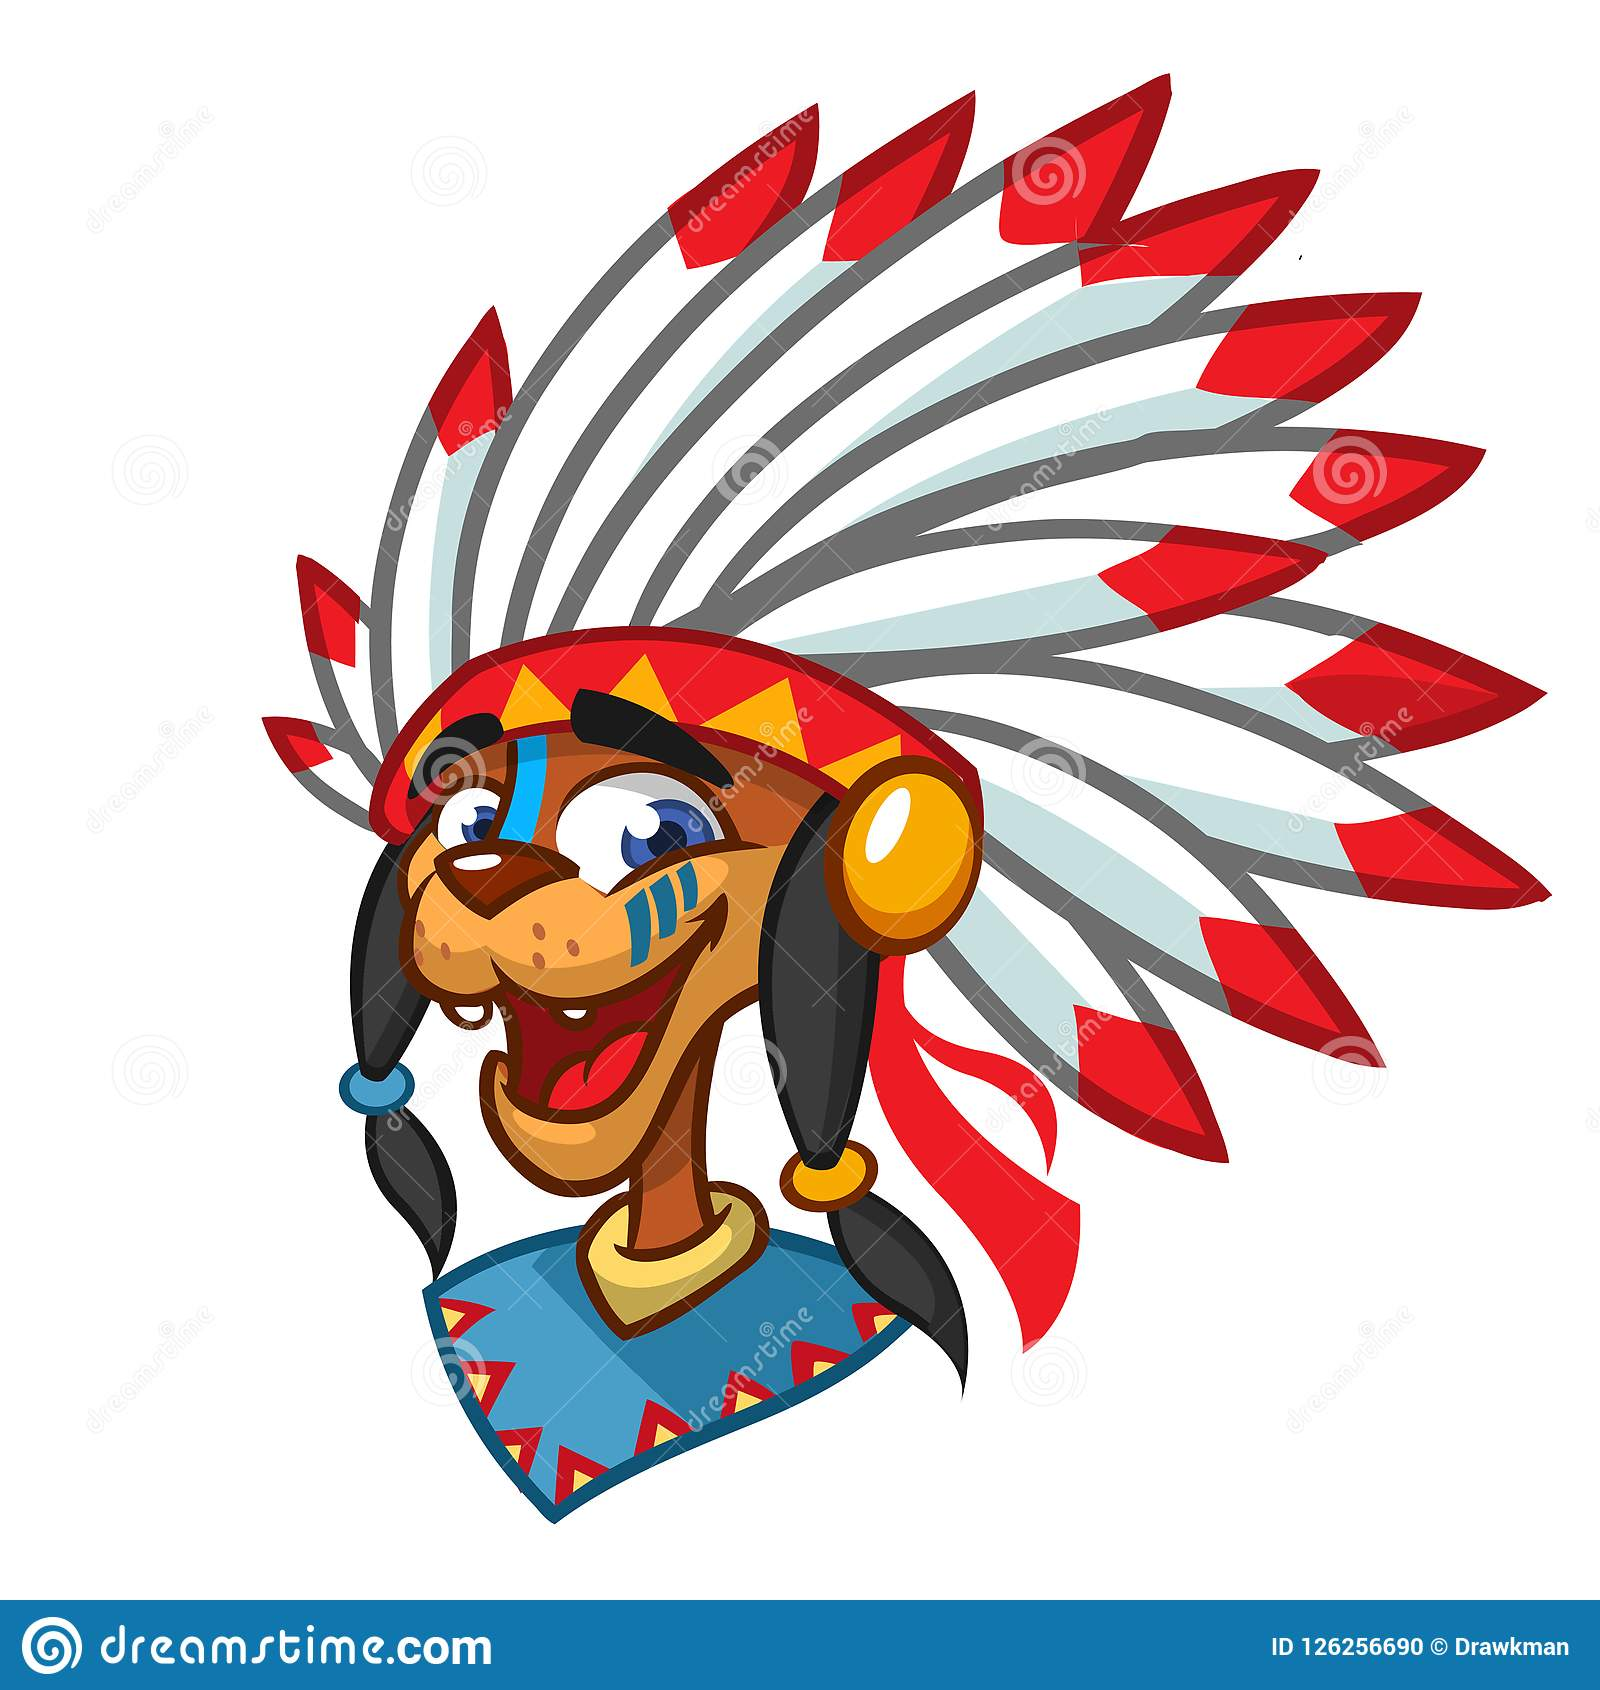 Cartoon Native American Indian Character. Illustration Clipart.